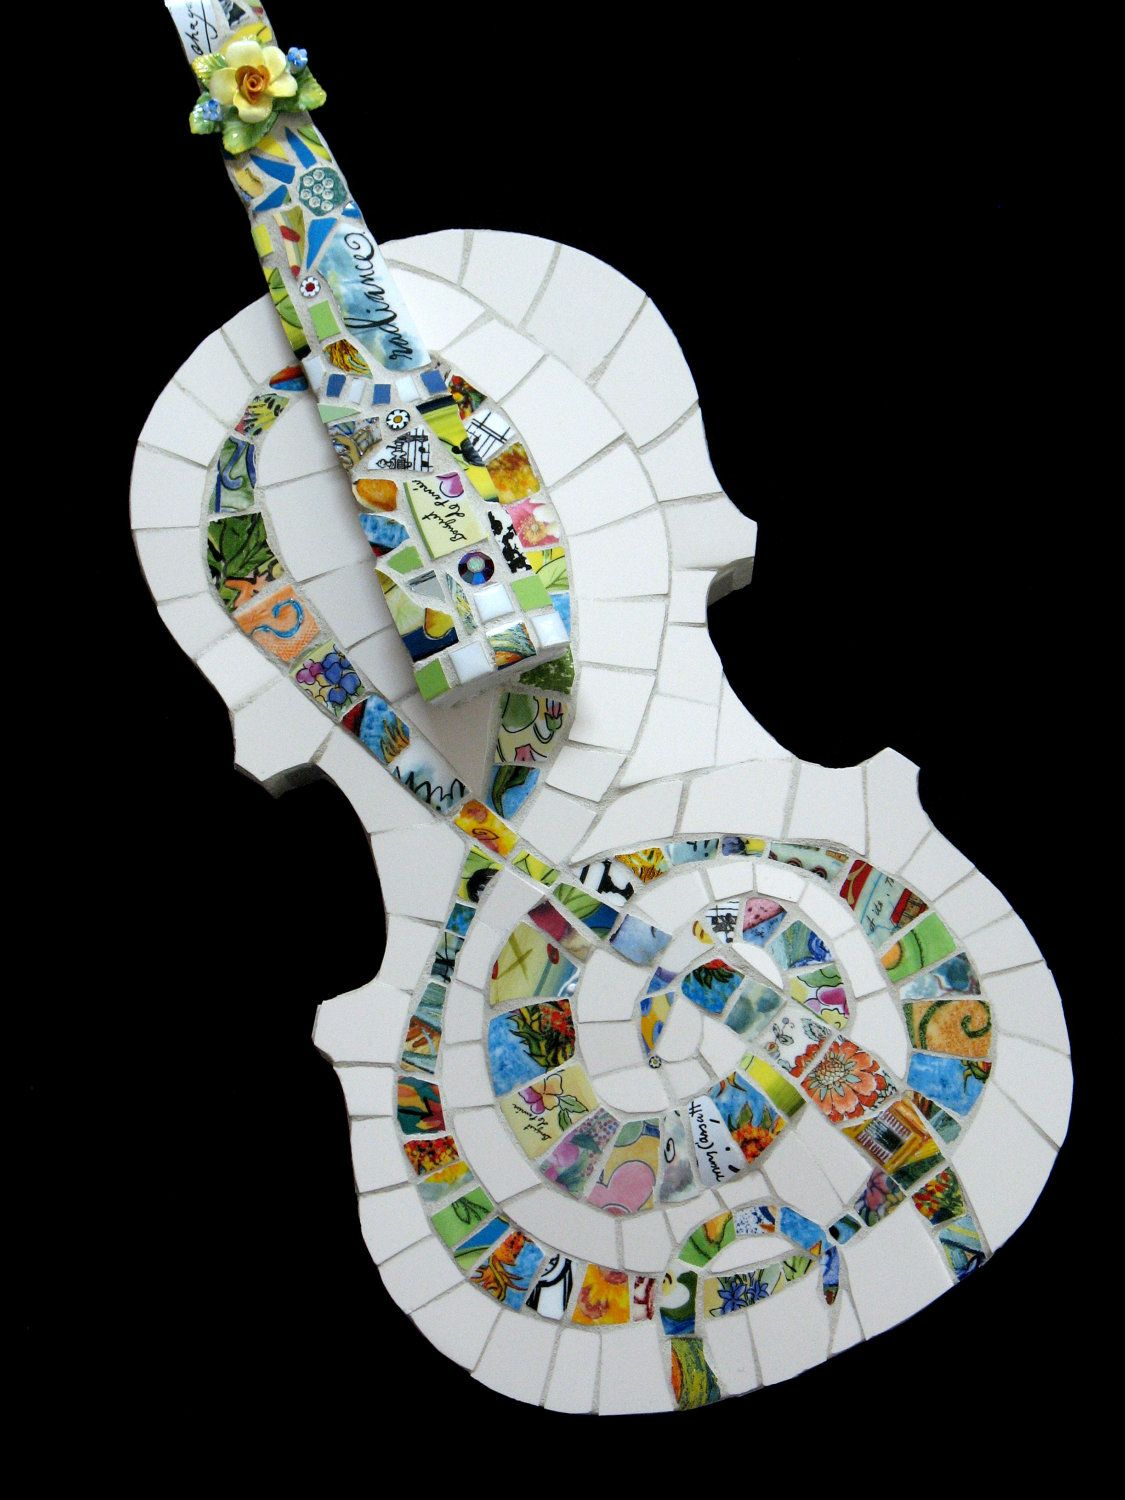 Mosaic Violin - Mosaic ART Musical Instrument. $545.00, via Etsy. #musicalinstruments